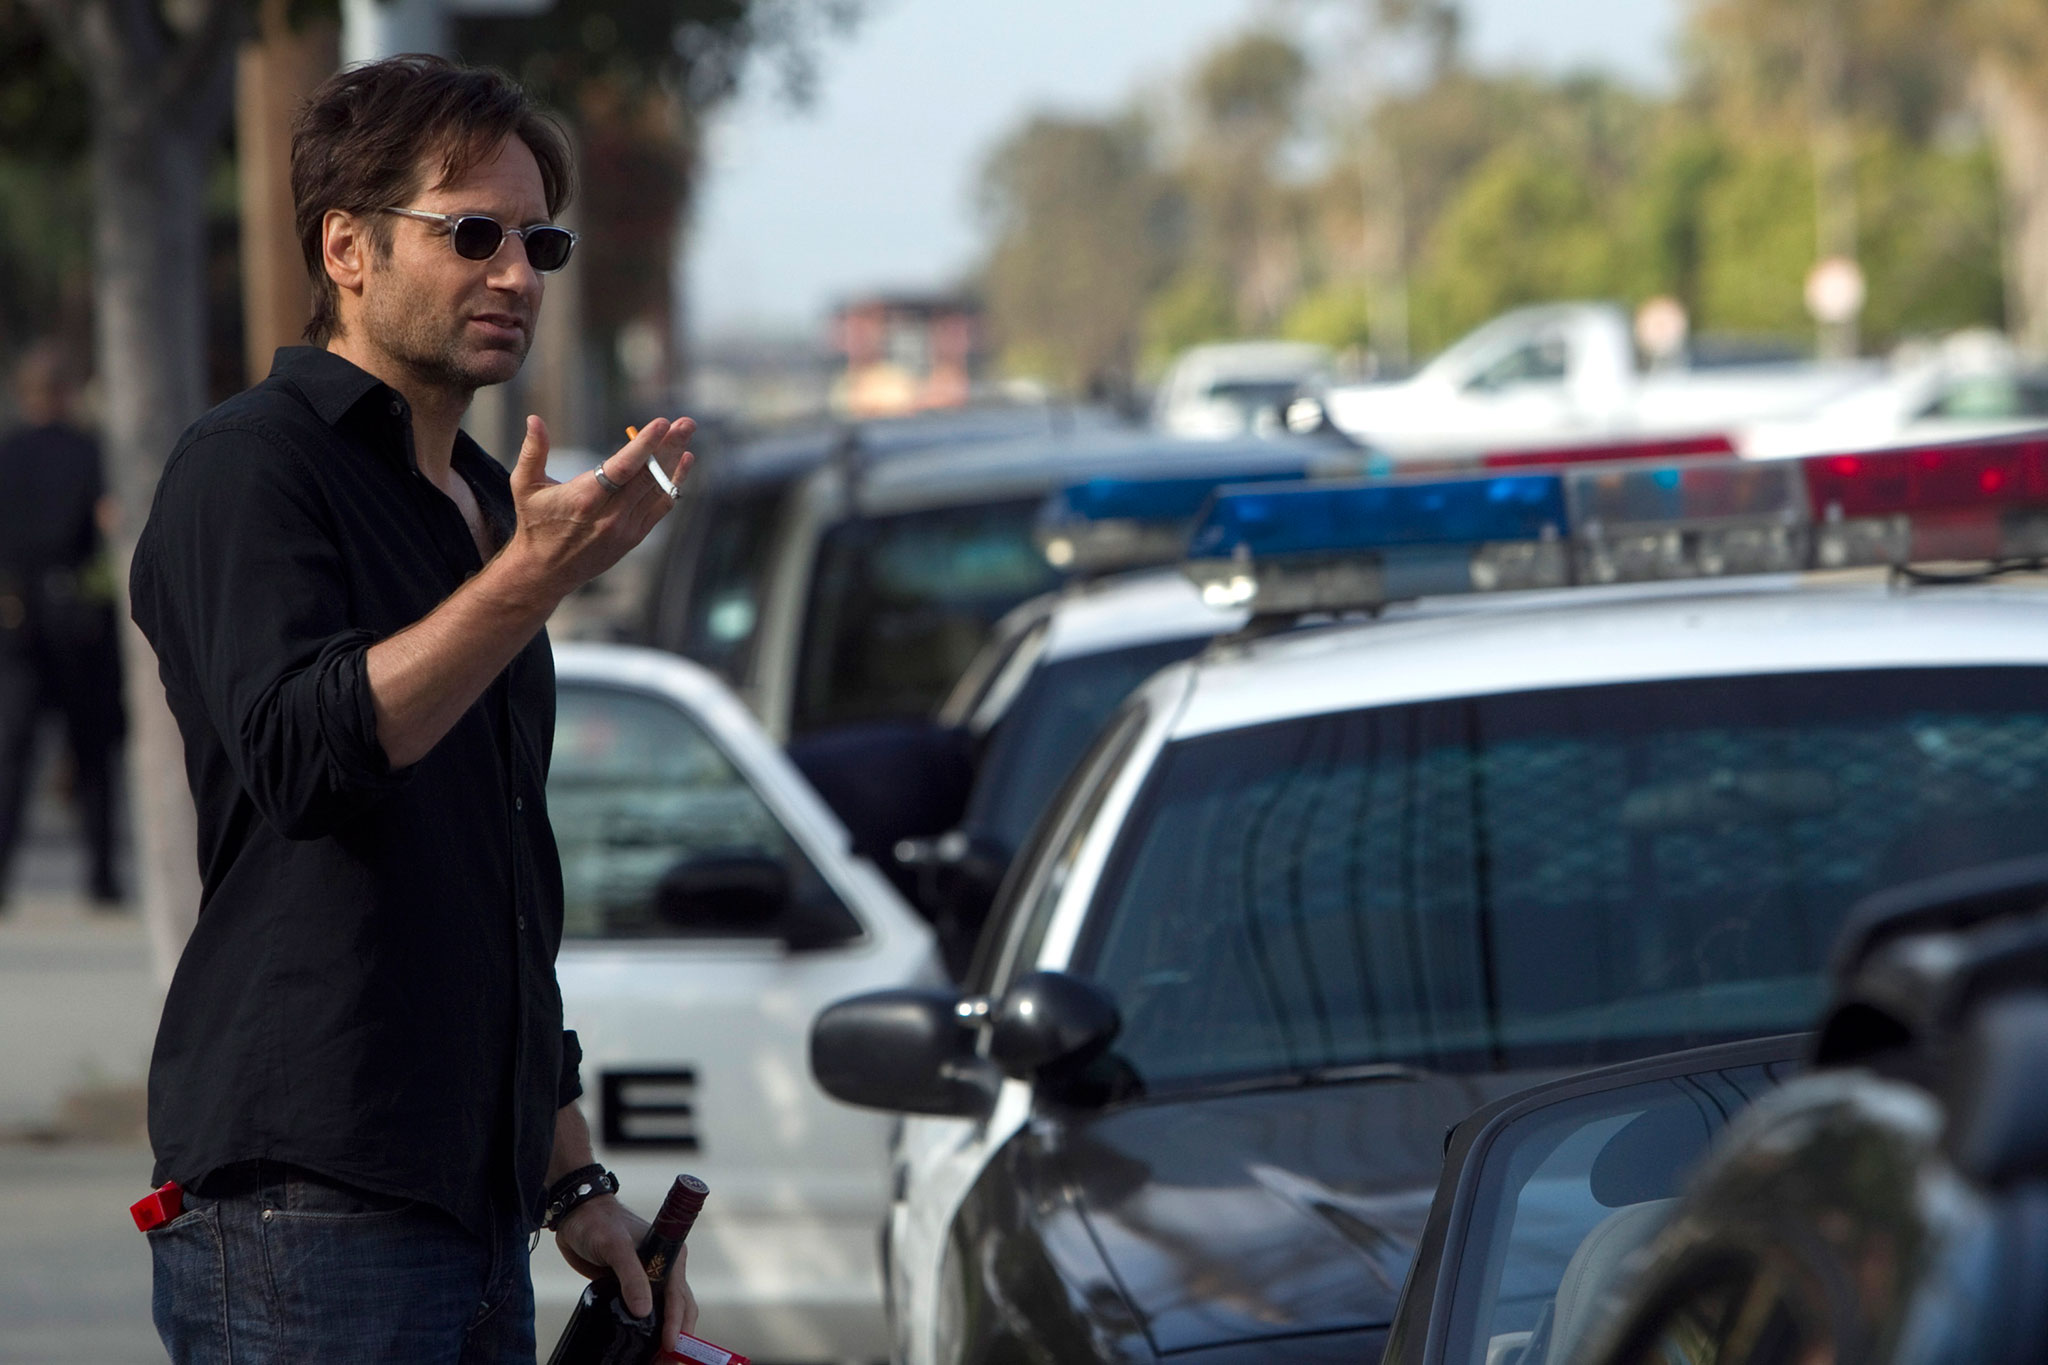 hank californication 10 Years with David Duchovny: On Loving Garry Shandling, Missing Bonnie Hunt, and Fighting for the Future